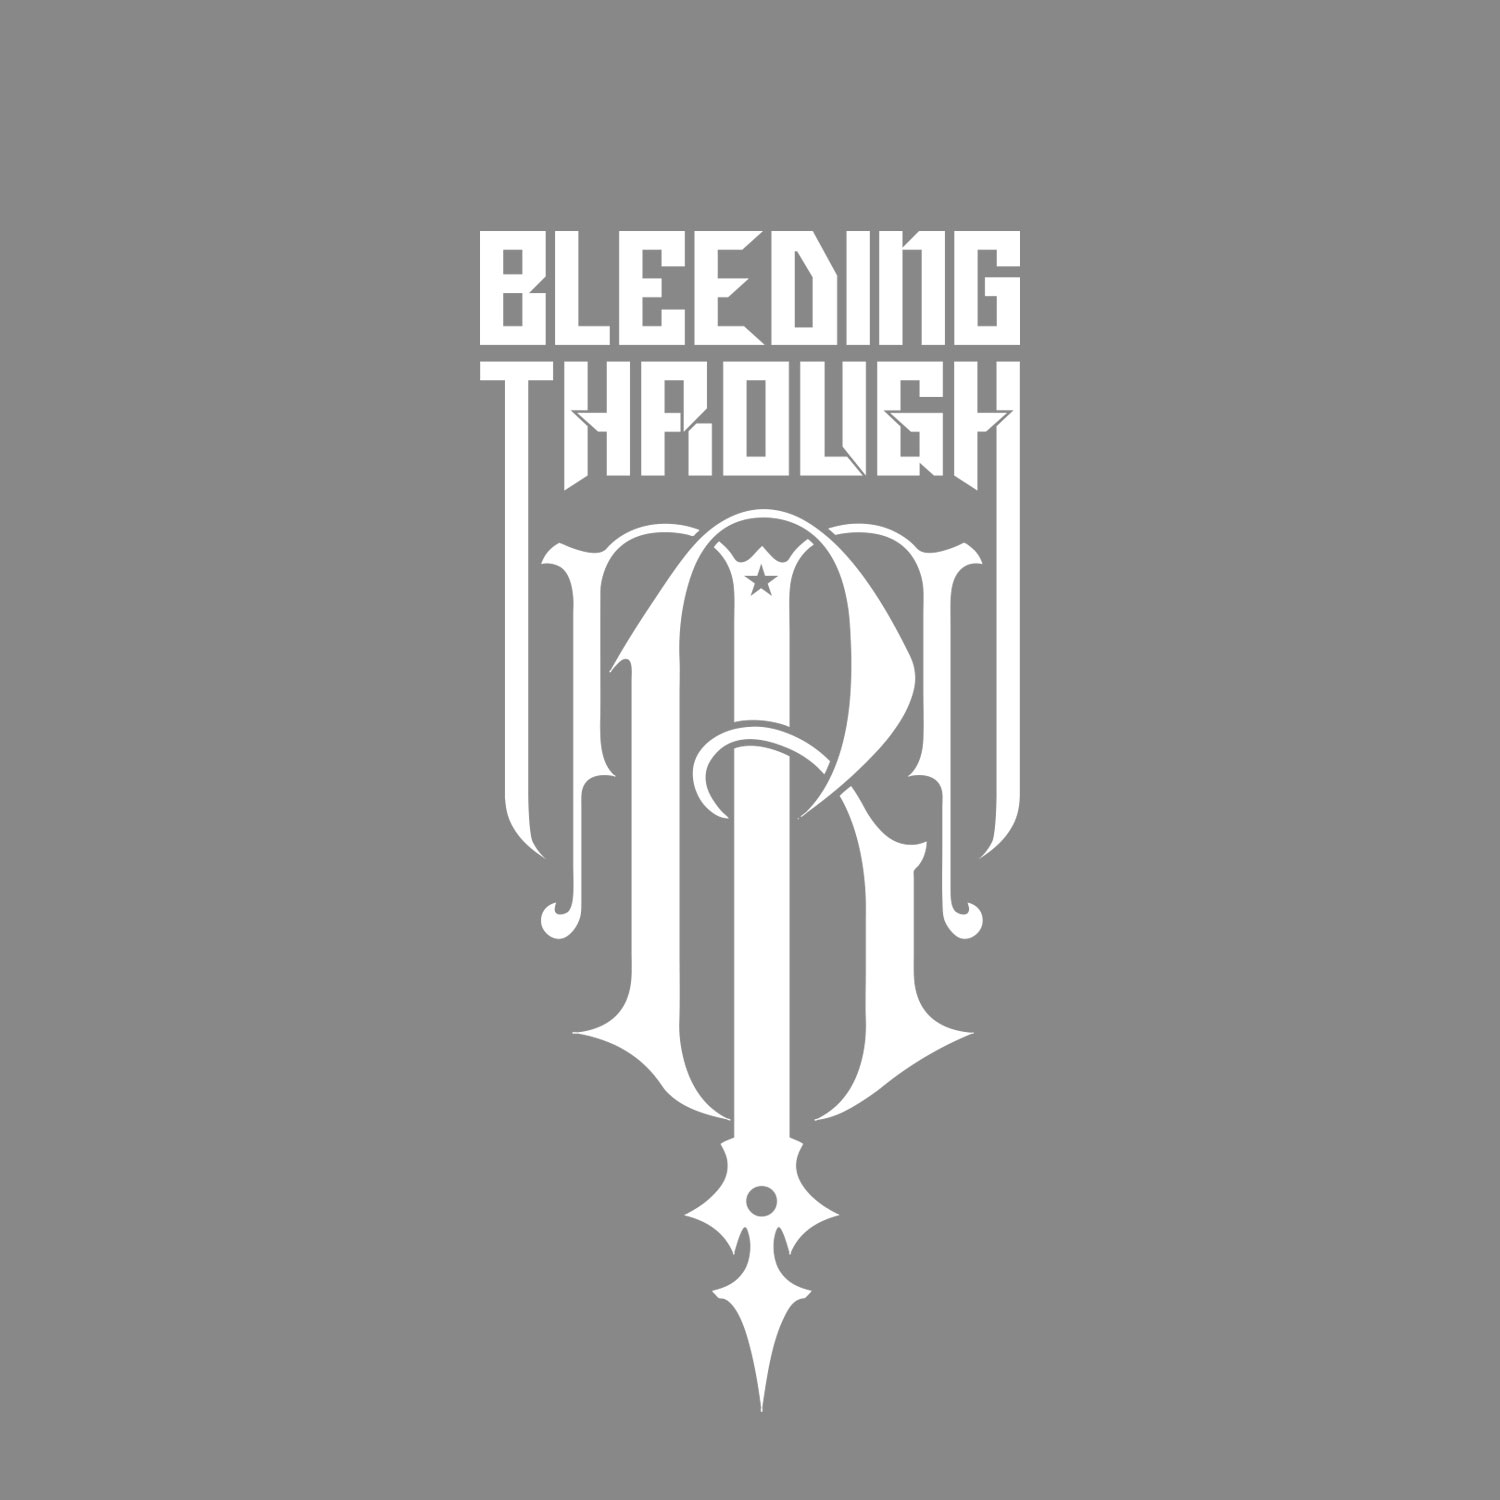 I did the album artwork for Bleeding Through's 'Declaration' album. With that came a new logo design and this monogram.